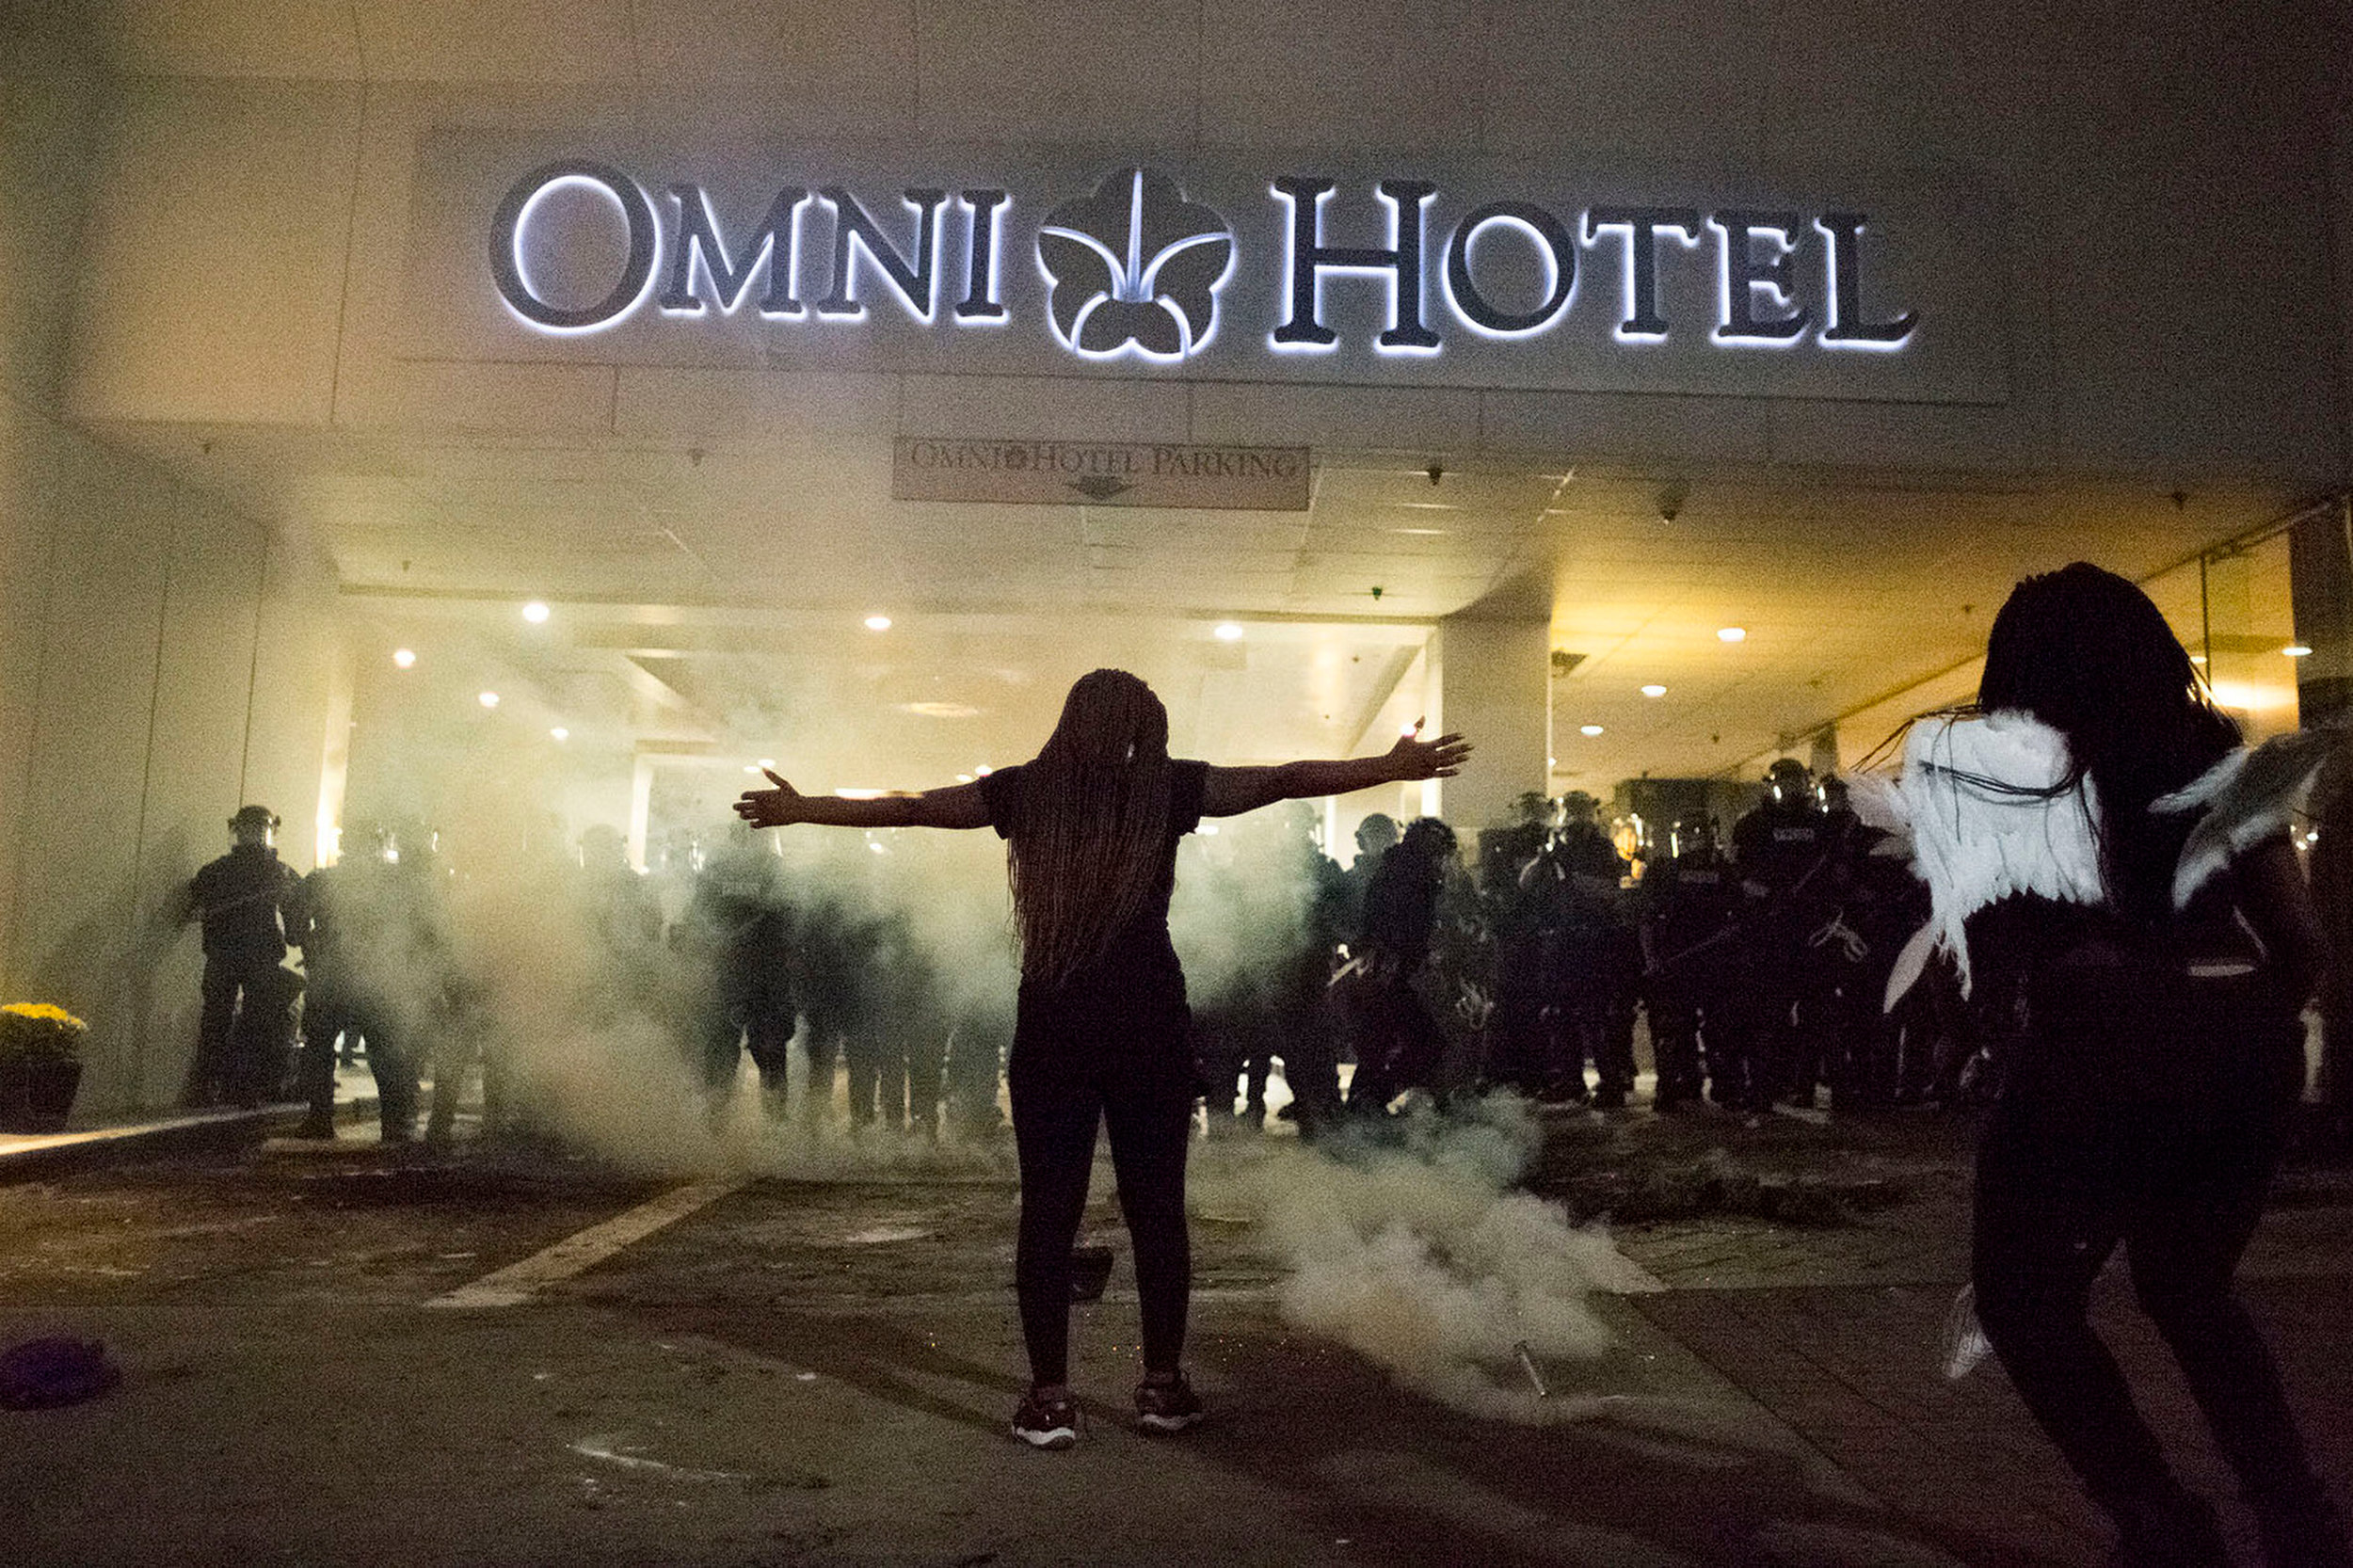 A protestor stretches out her arms as police deploy crowd control agents in front of the Omni Hotel, Sept. 21, 2016, on East Trade Street in downtown Charlotte, N.C, during the second night of clashes between police and protesters.